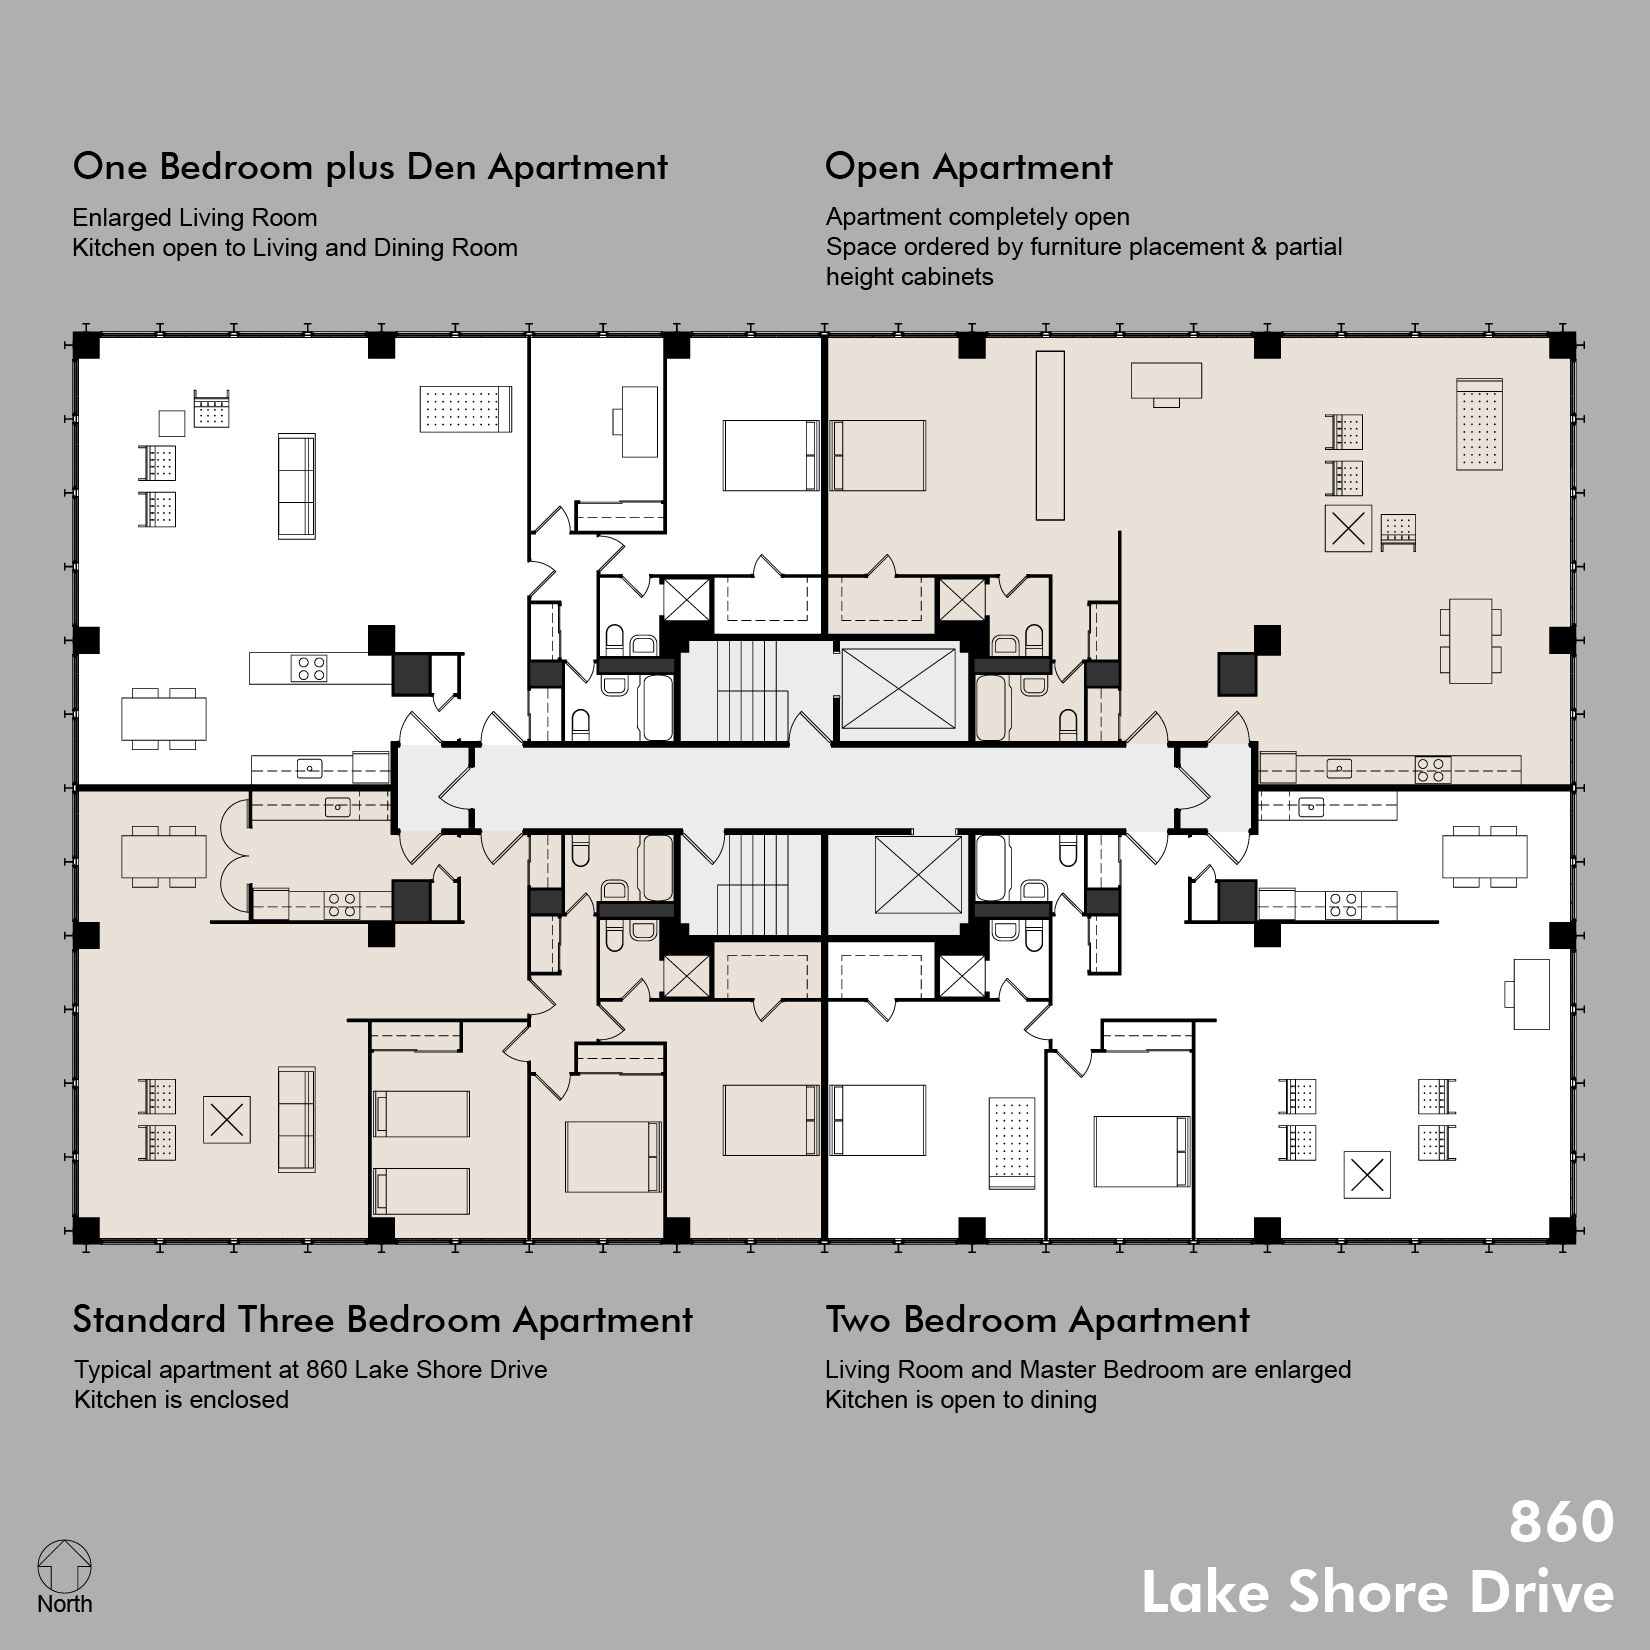 860 floor plans including standard apt Building floor plans